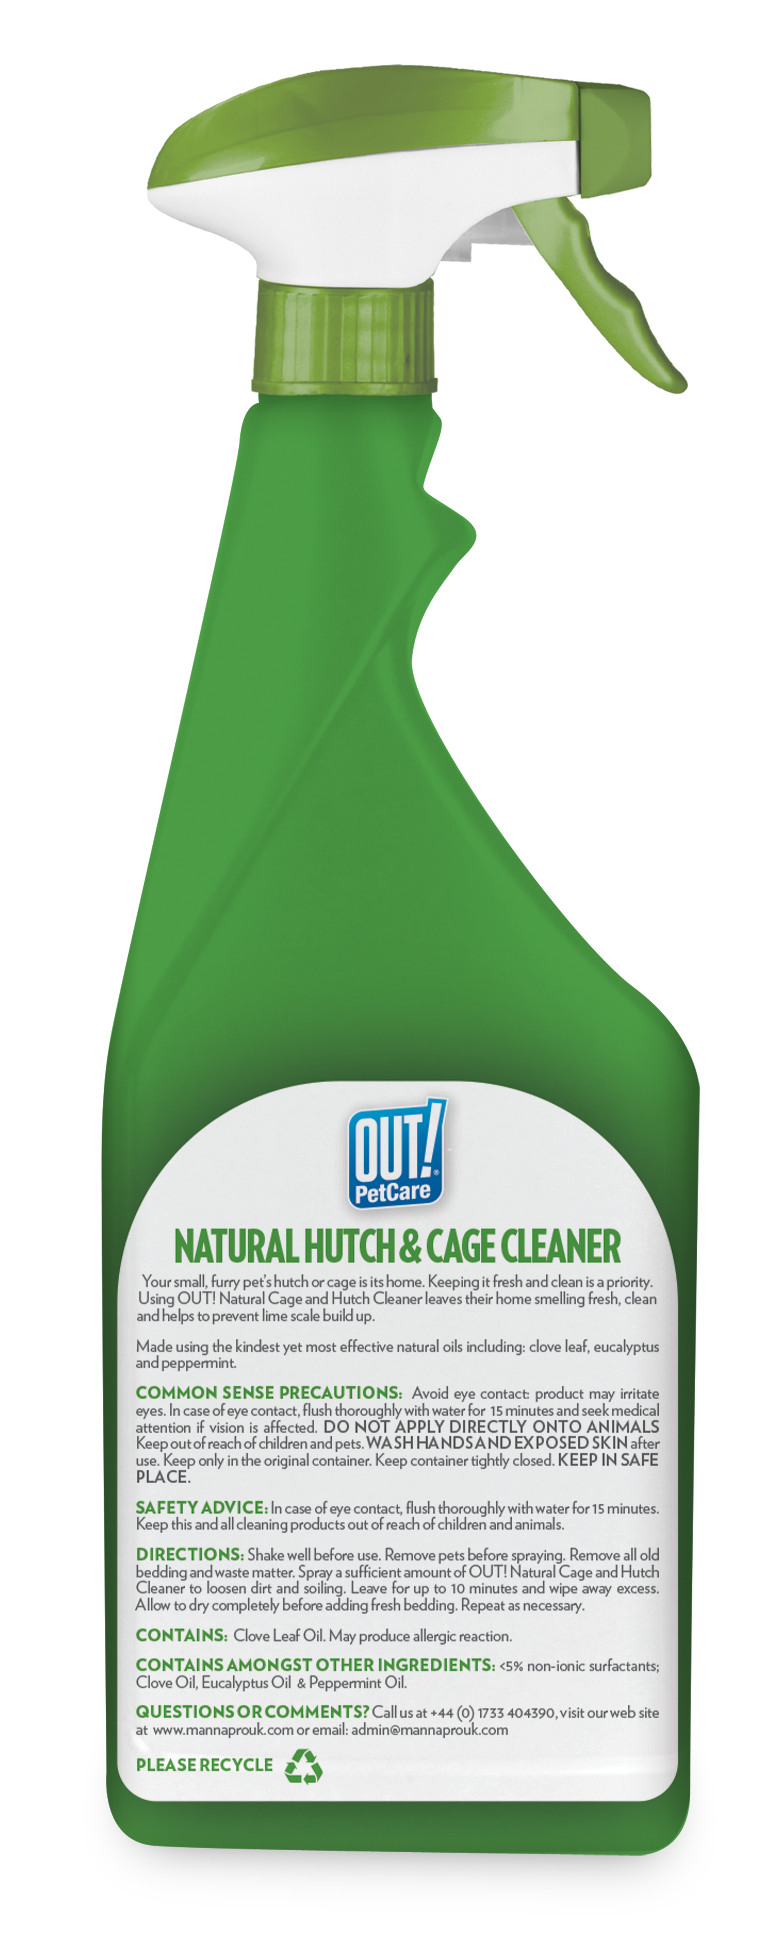 Out Petcare Cage & Hutch Cleaner